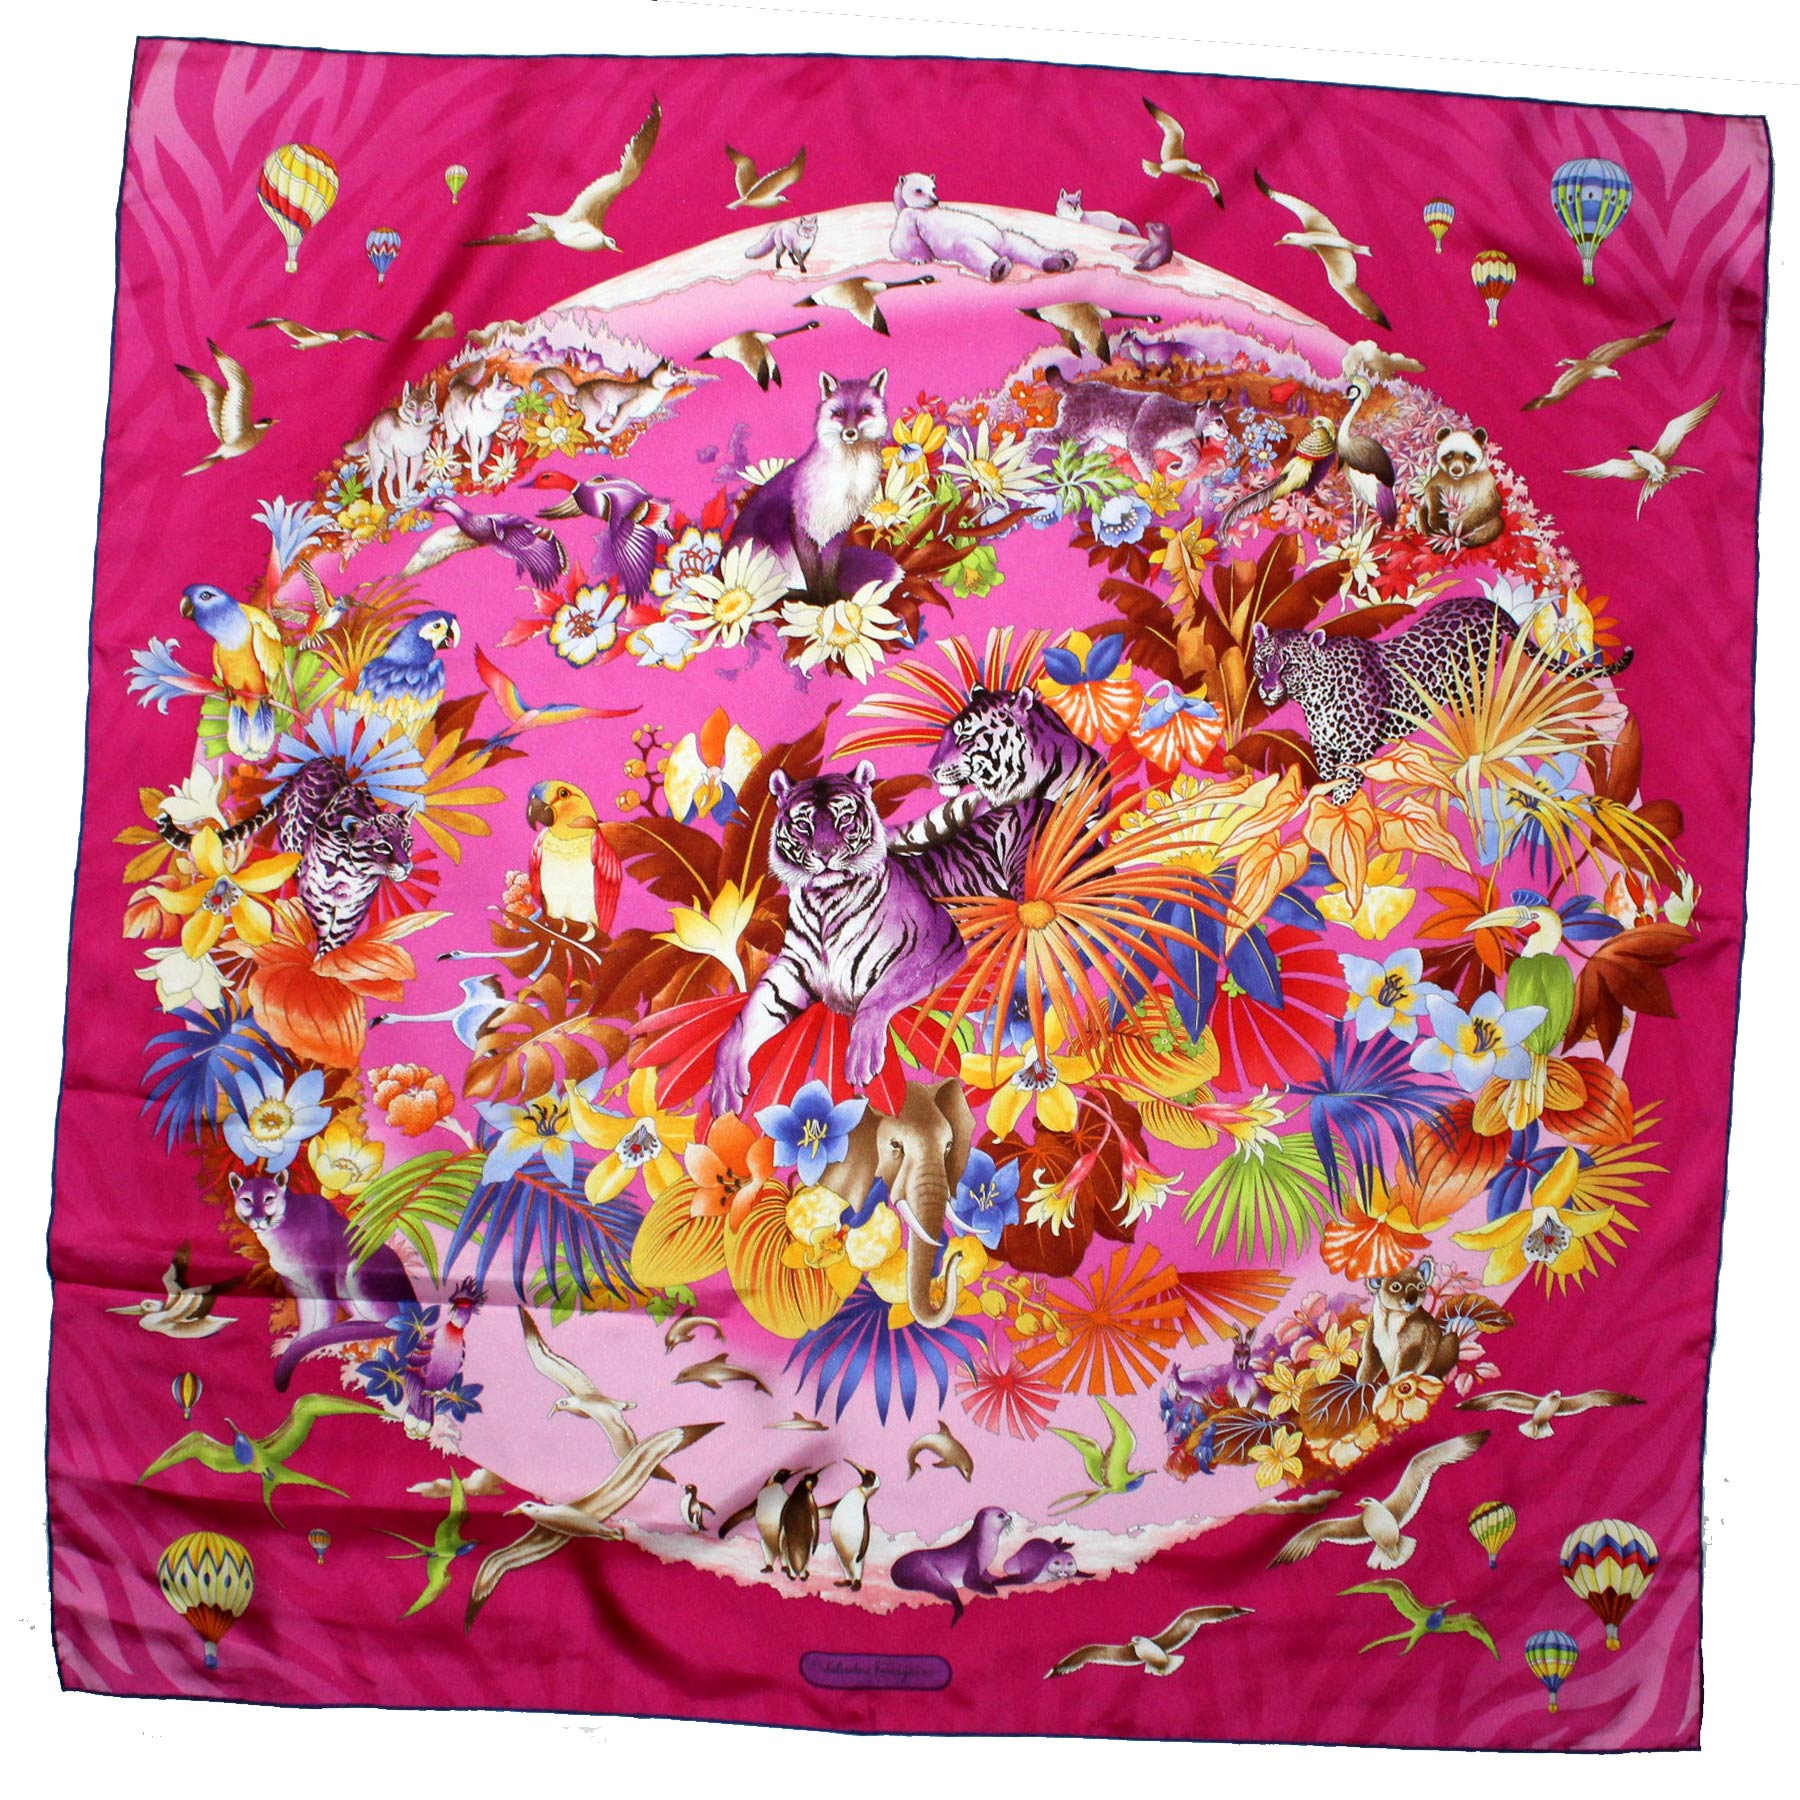 Salvatore Ferragamo Silk Scarf Fuchsia Pink Animal World